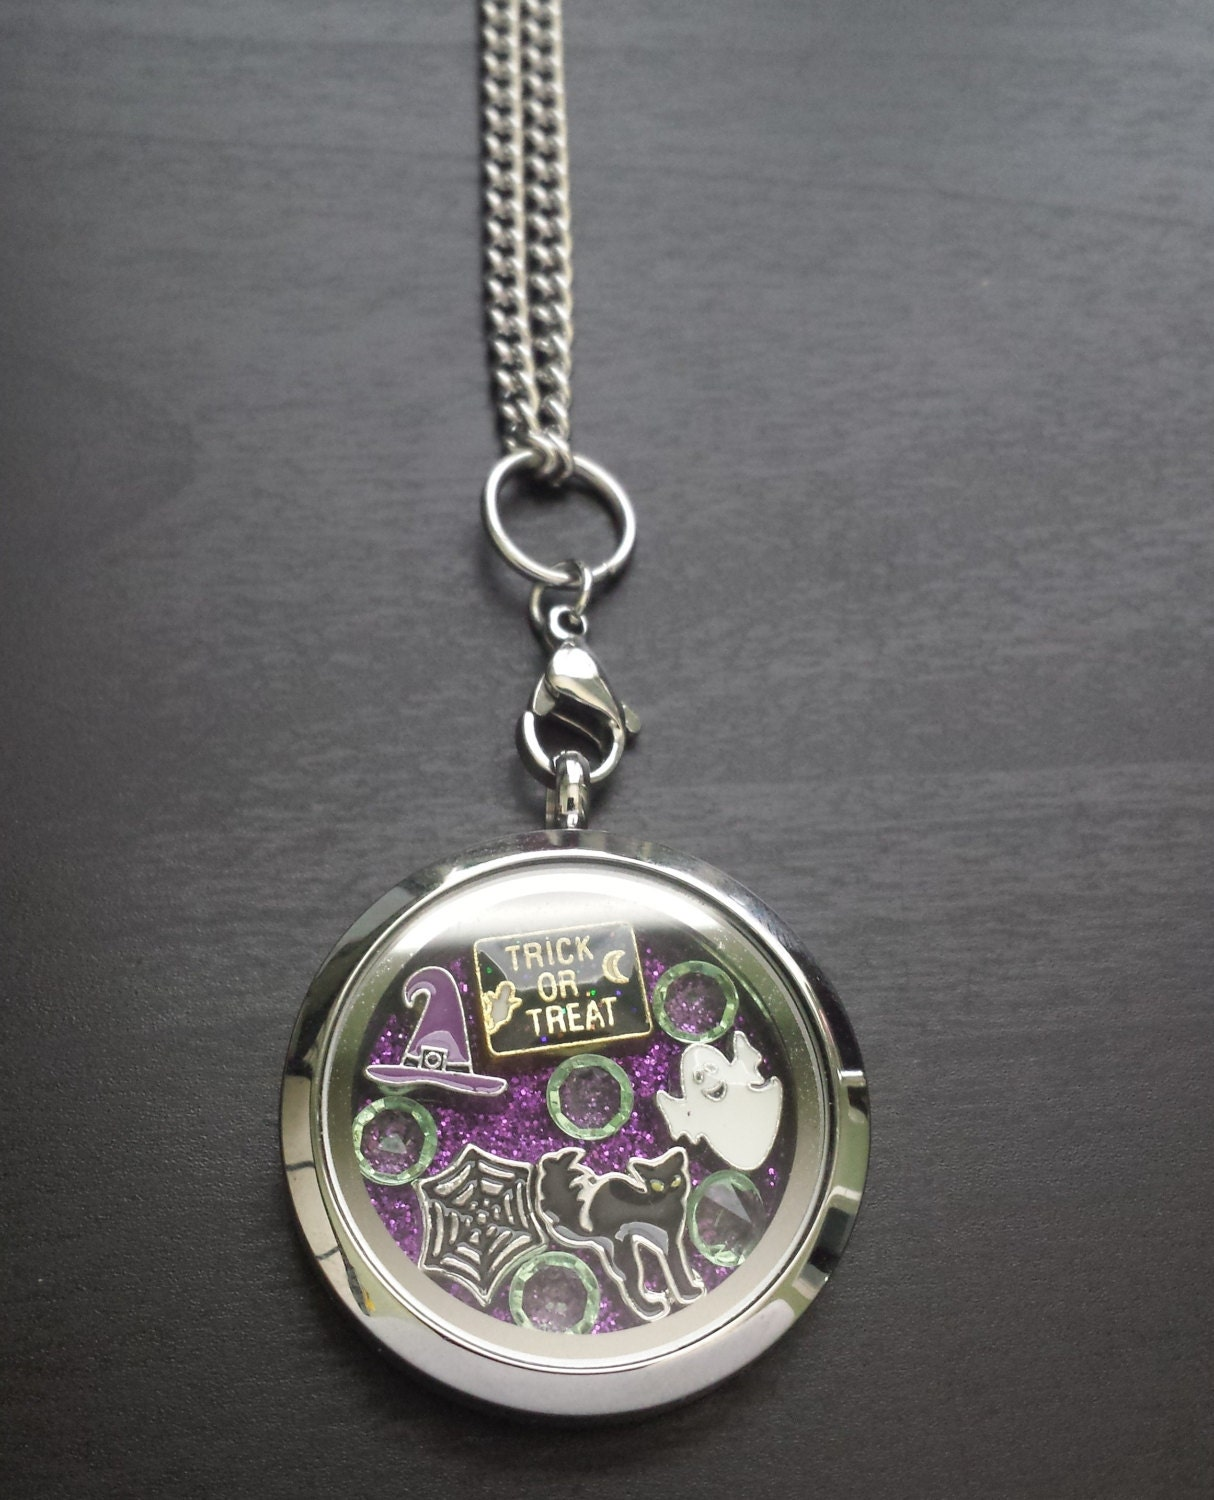 floating charm locket necklace includes locket